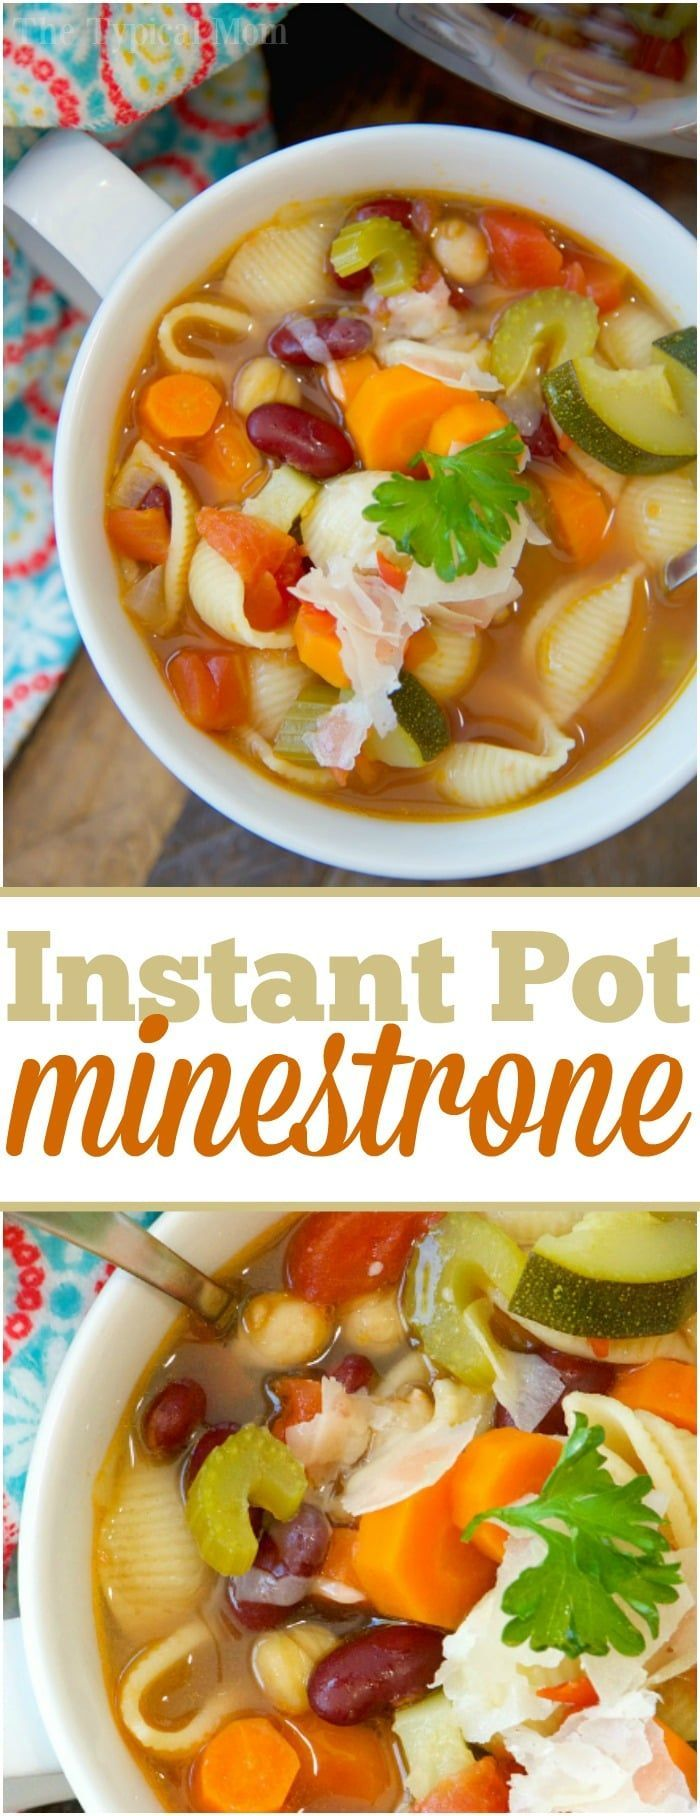 This easy Instant Pot minestrone soup recipe is full of flavor! Healthy and vegetarian too, my kids raved that this was their favorite pressure cooker soup. ad via @thetypicalmom (Favorite Pins Meals)